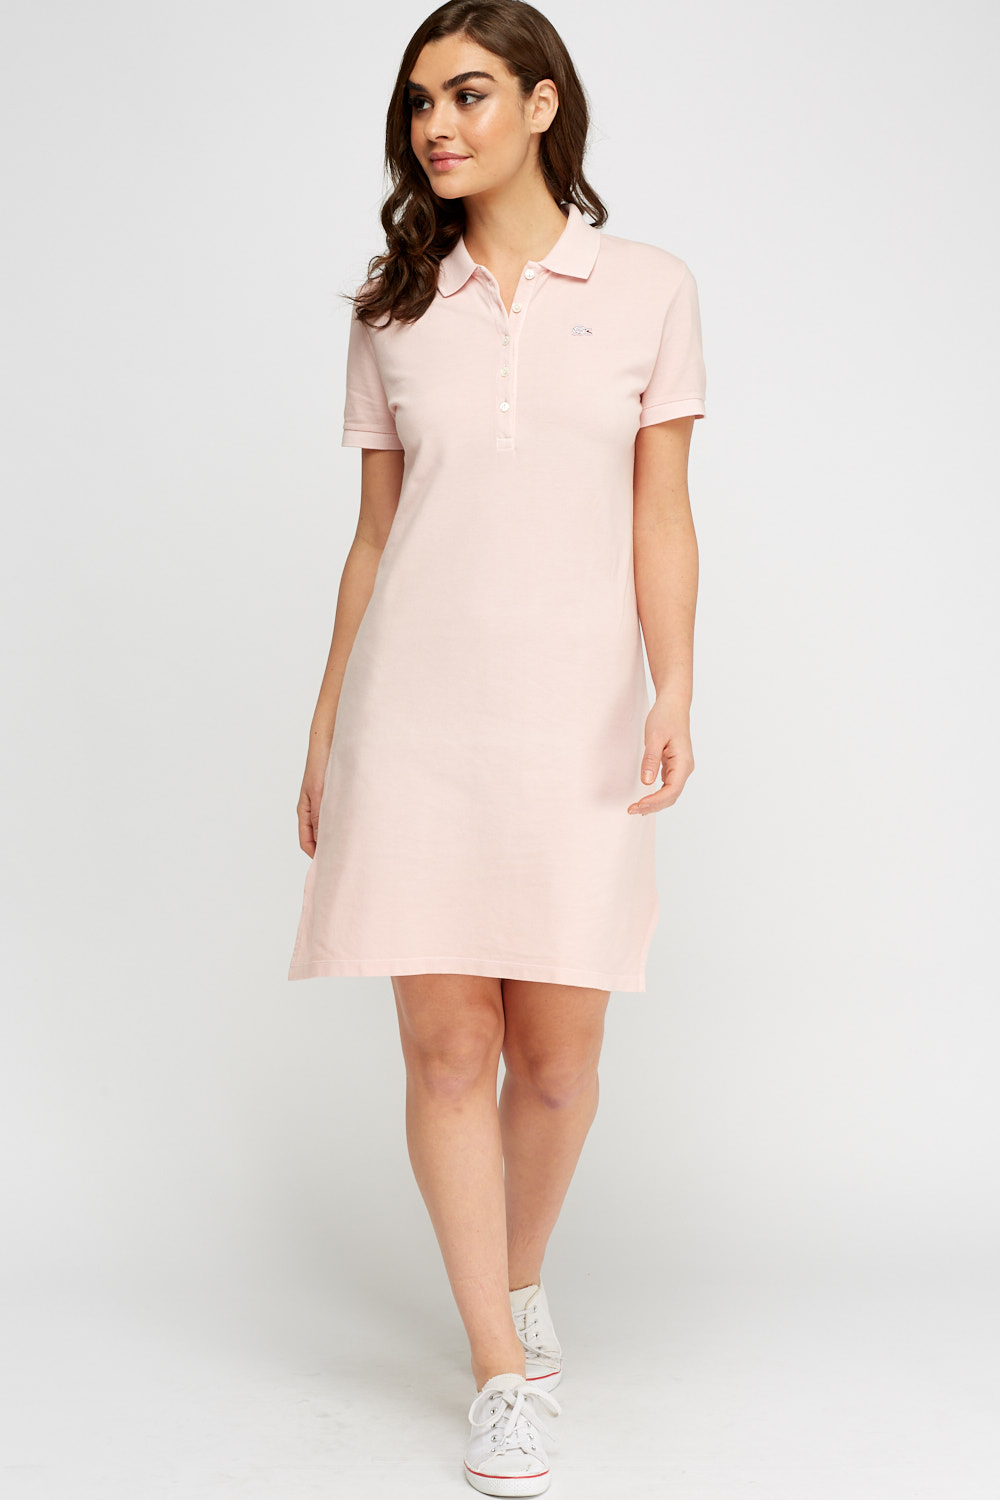 Lacoste Polo Shirt Dress - Limited edition | Discount ...